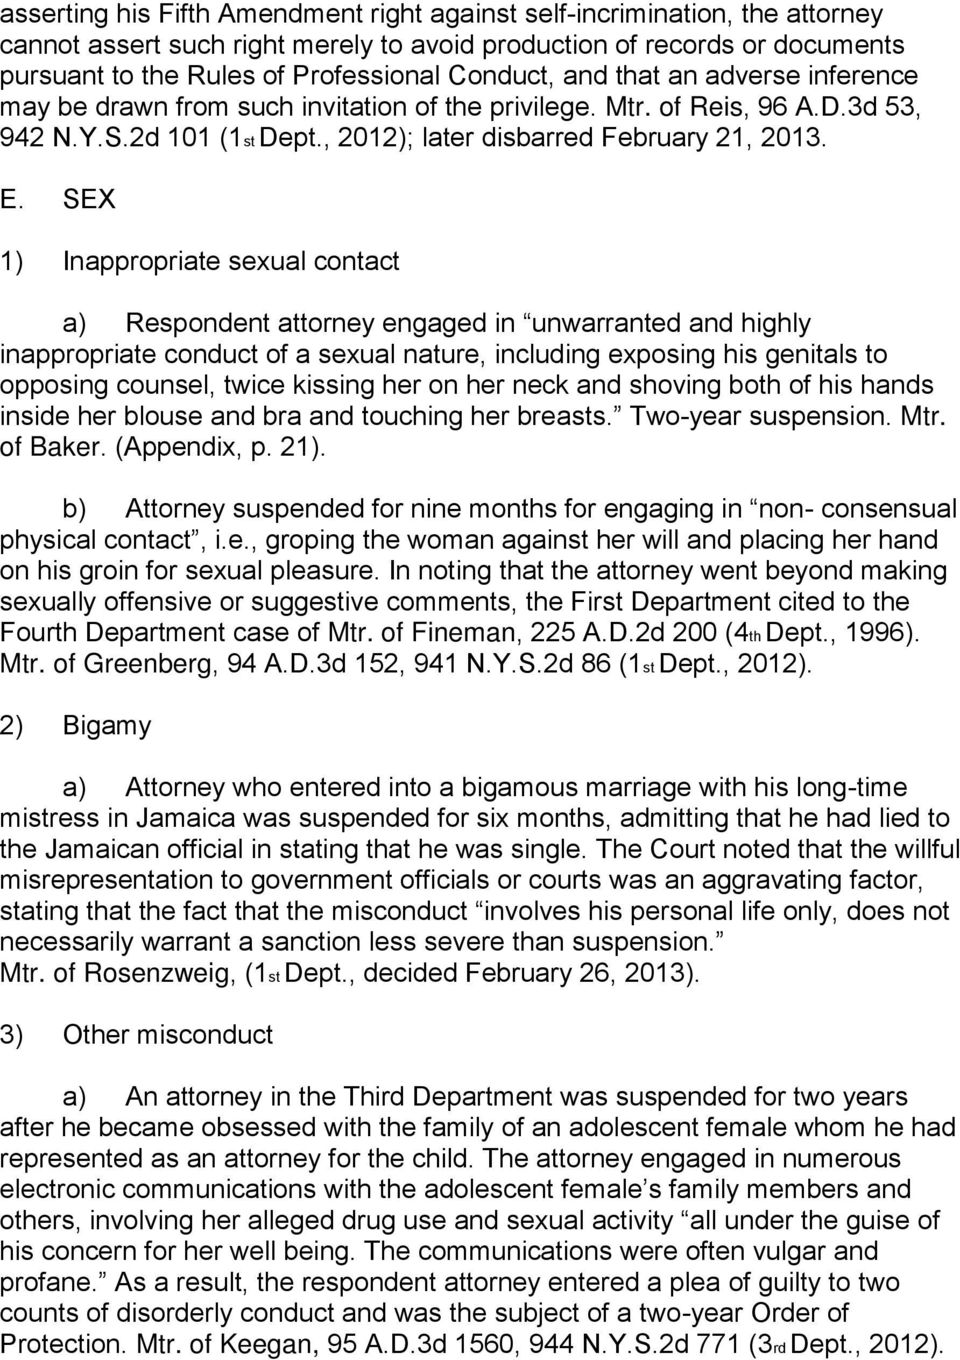 SEX 1) Inappropriate sexual contact a) Respondent attorney engaged in unwarranted and highly inappropriate conduct of a sexual nature, including exposing his genitals to opposing counsel, twice